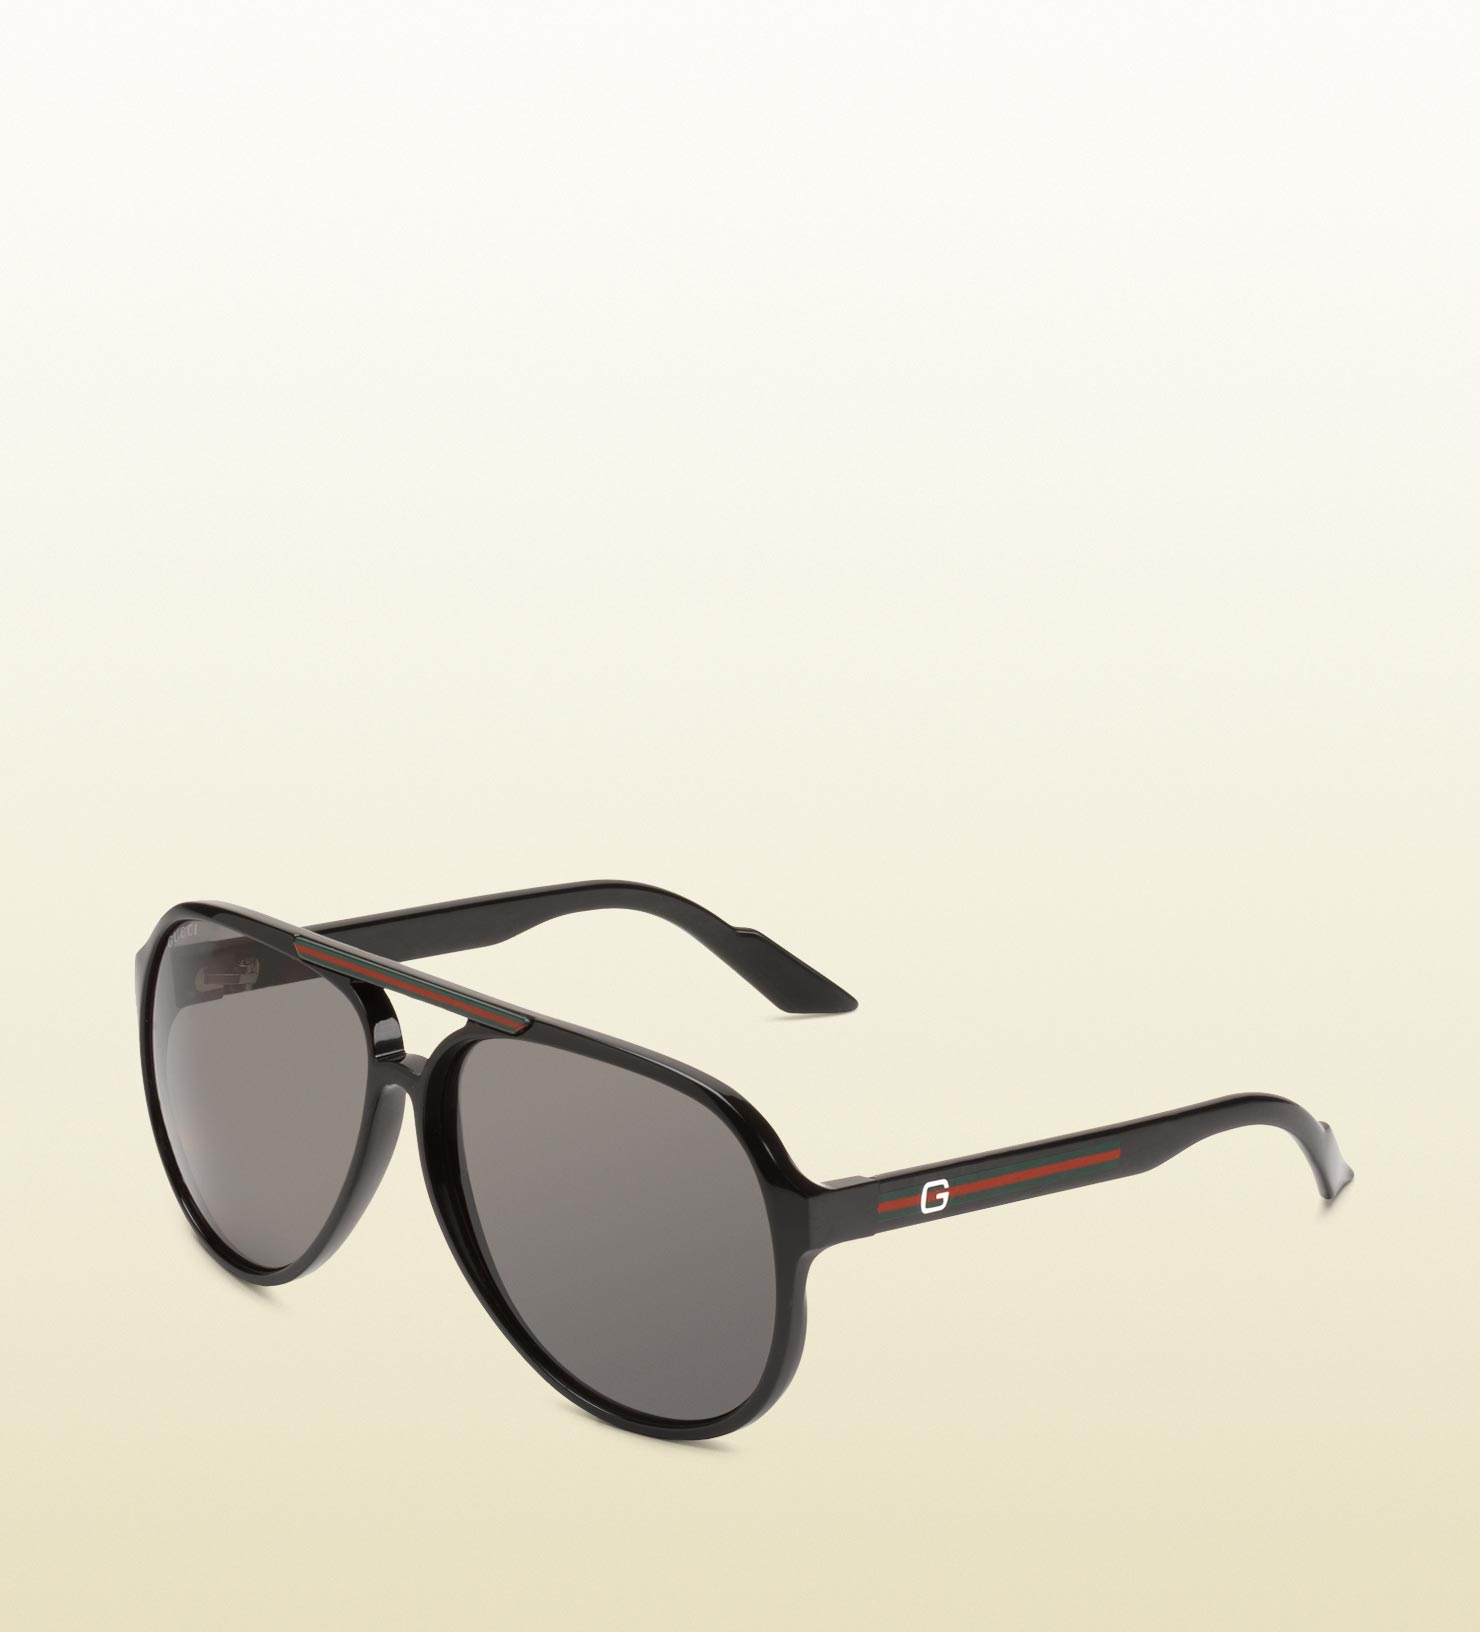 e1fc066f268 Lyst - Gucci Medium Aviator Sunglasses With G Detail And Signature ...